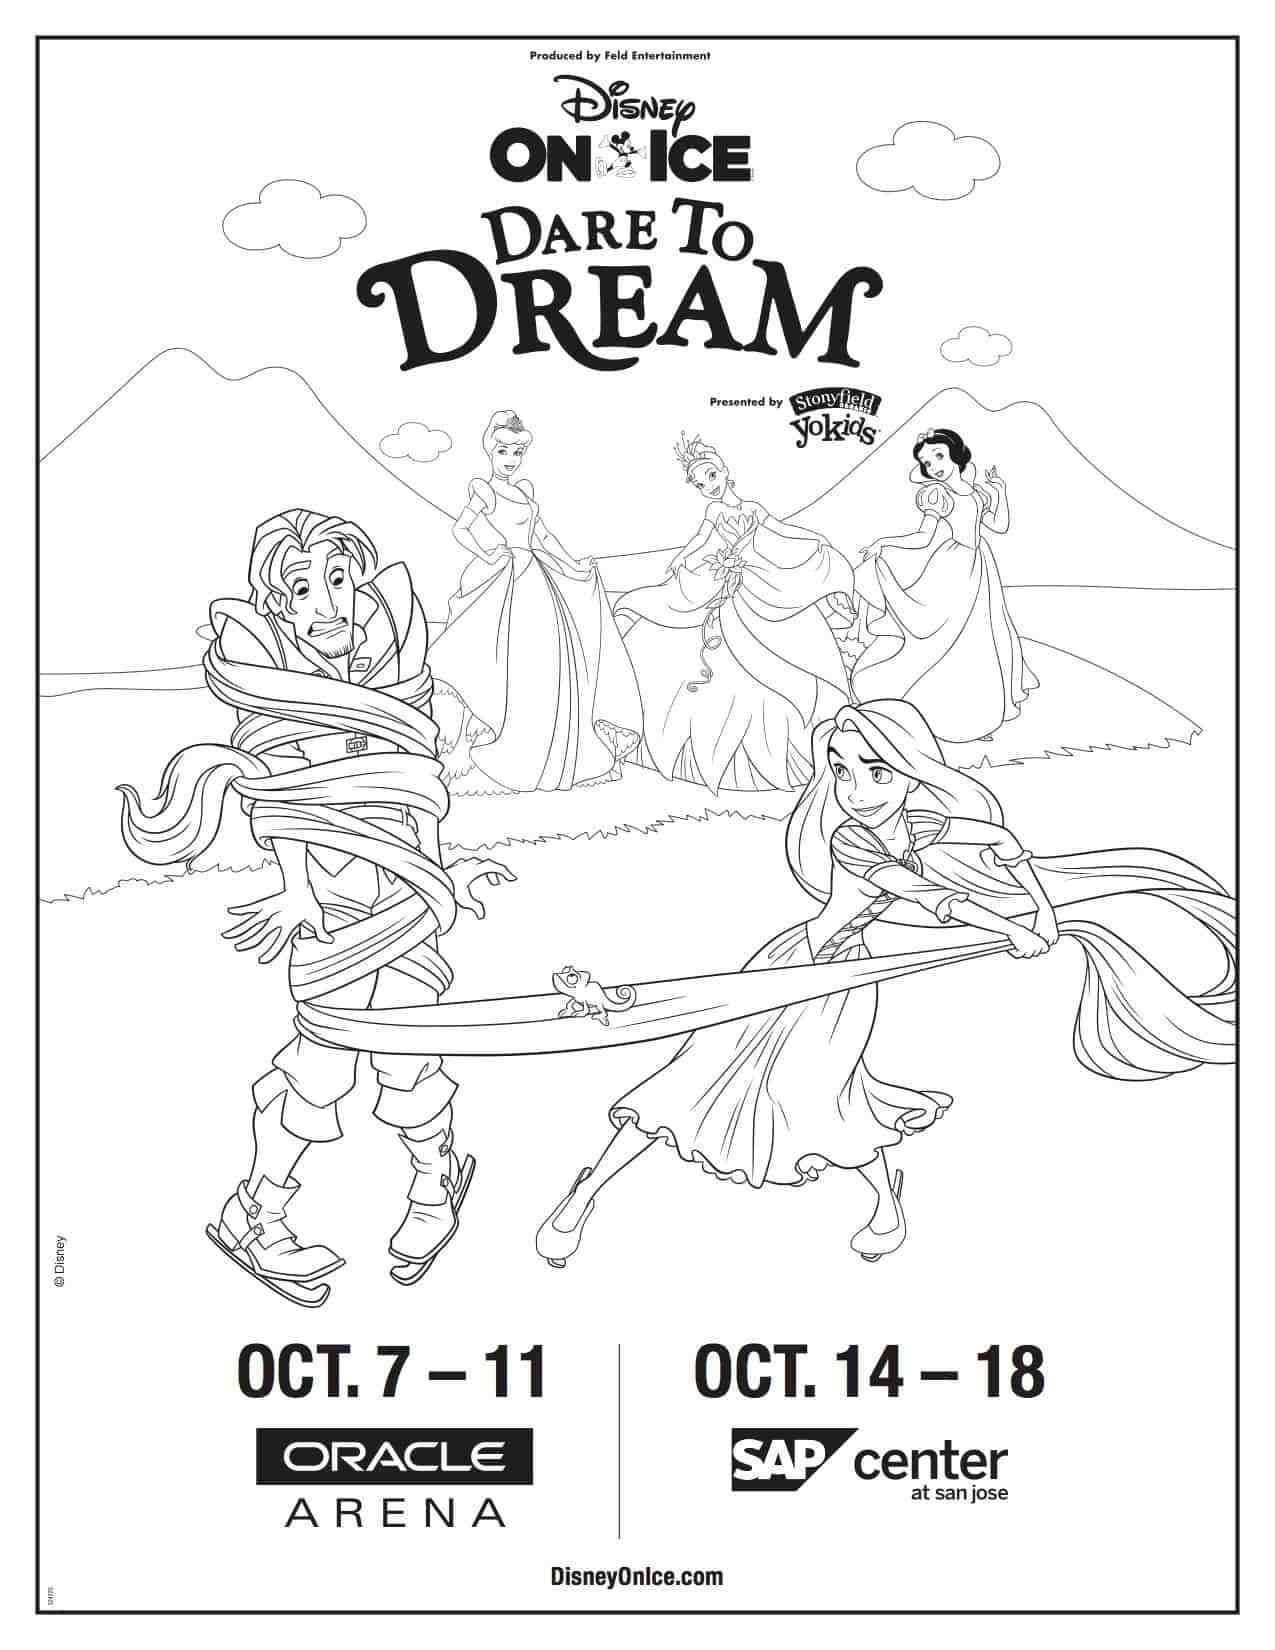 Disney On Ice Dare To Dream Coming To The Bay Area Coloring Page Half Crazy Mama In 2020 Free Disney Coloring Pages Coloring Pages Disney Coloring Pages